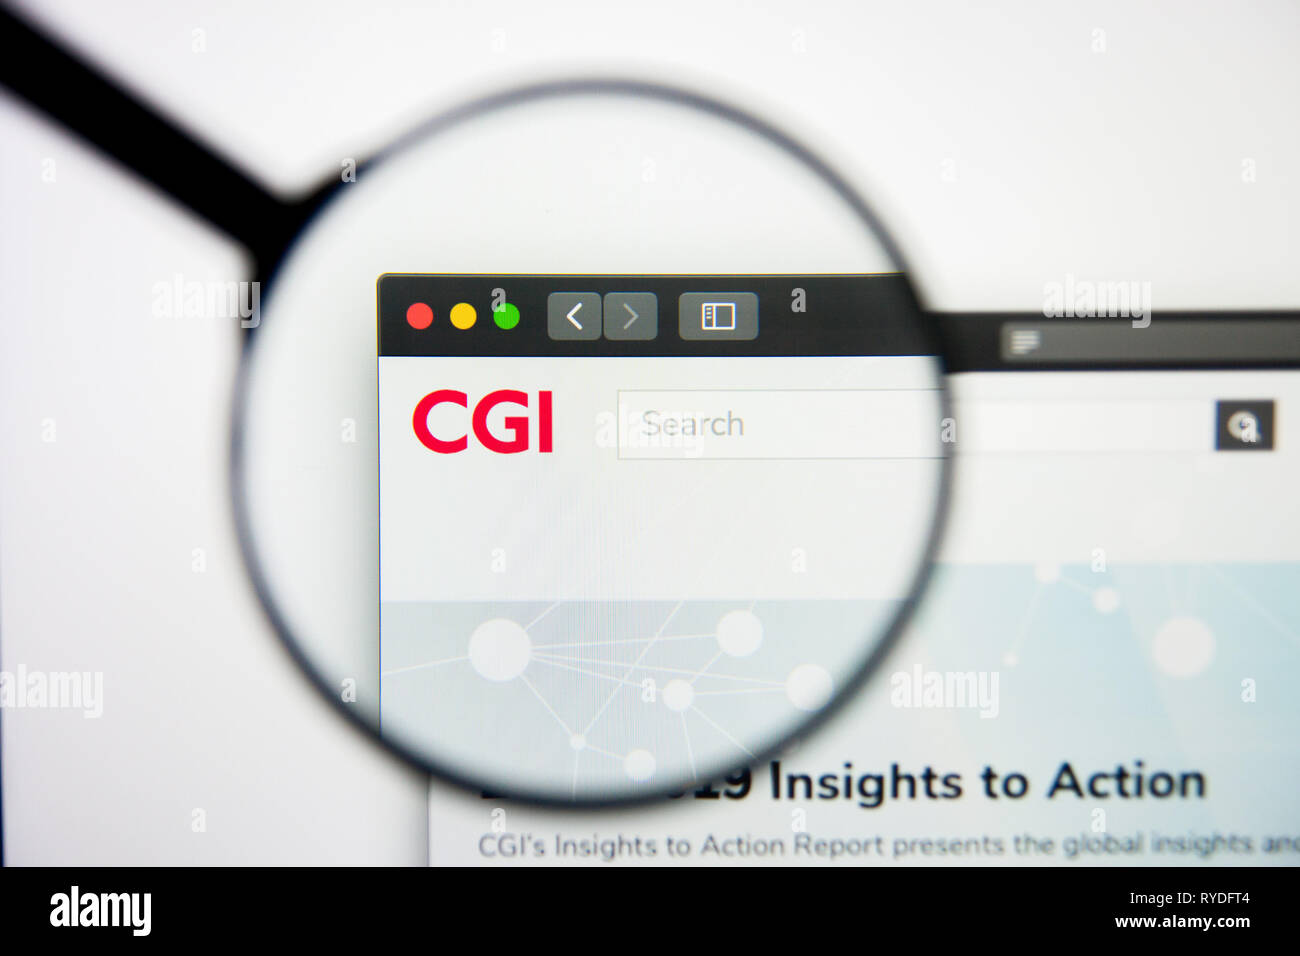 Los Angeles, California, USA - 5 March 2019: CGI Group website homepage. CGI Group logo visible on display screen, Illustrative Editorial - Stock Image